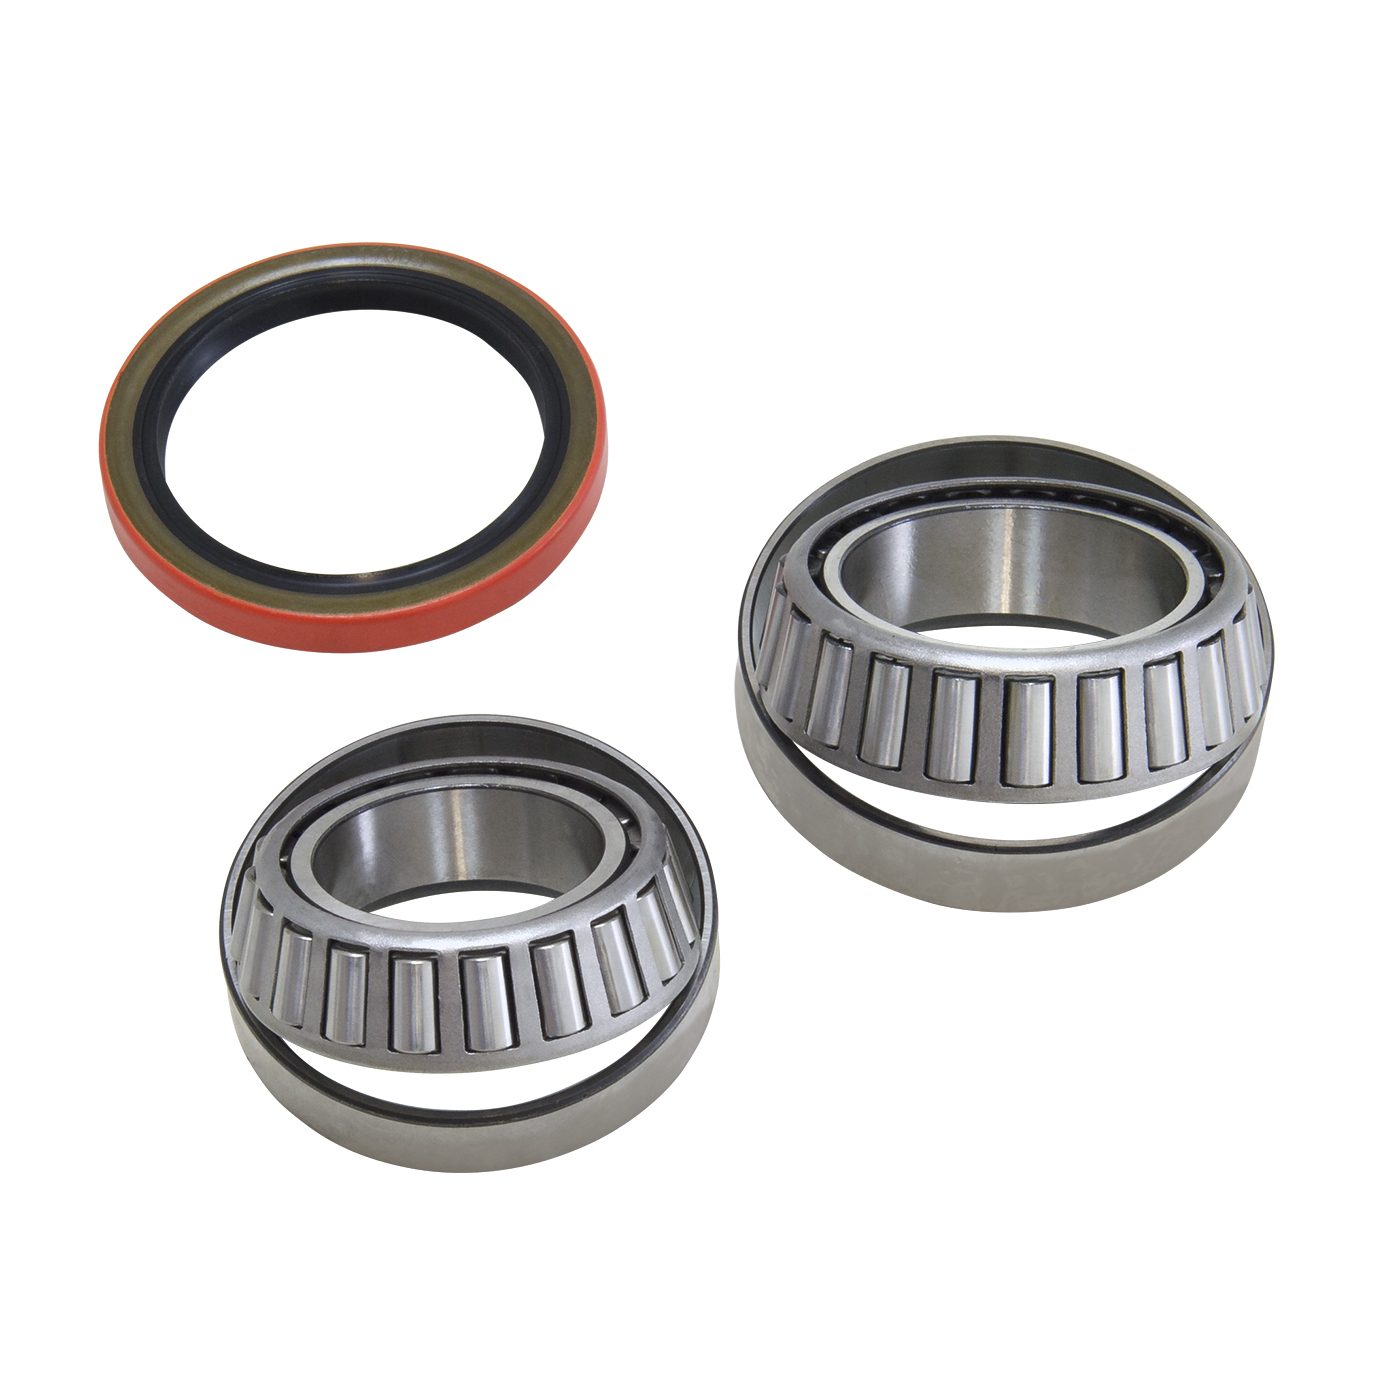 AK F-G06 - Yukon Front Axle Bearing and Seal Kit for Dana 44